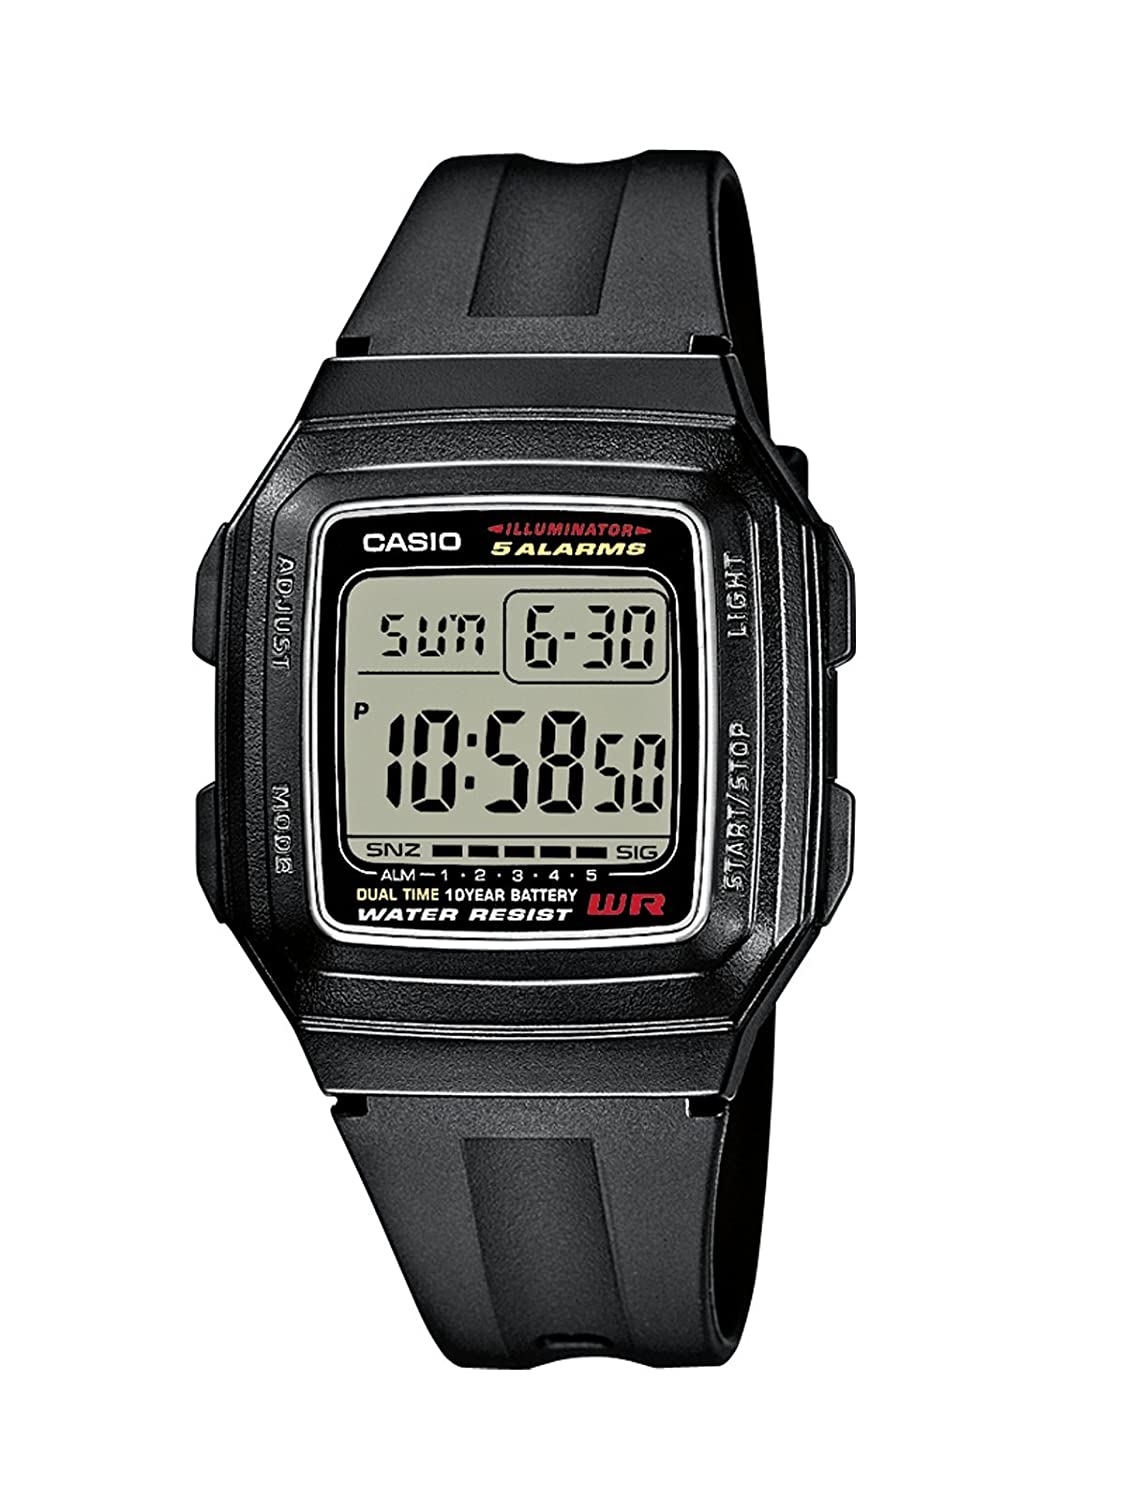 Reloj Casio Collection para Hombre F WA AEF